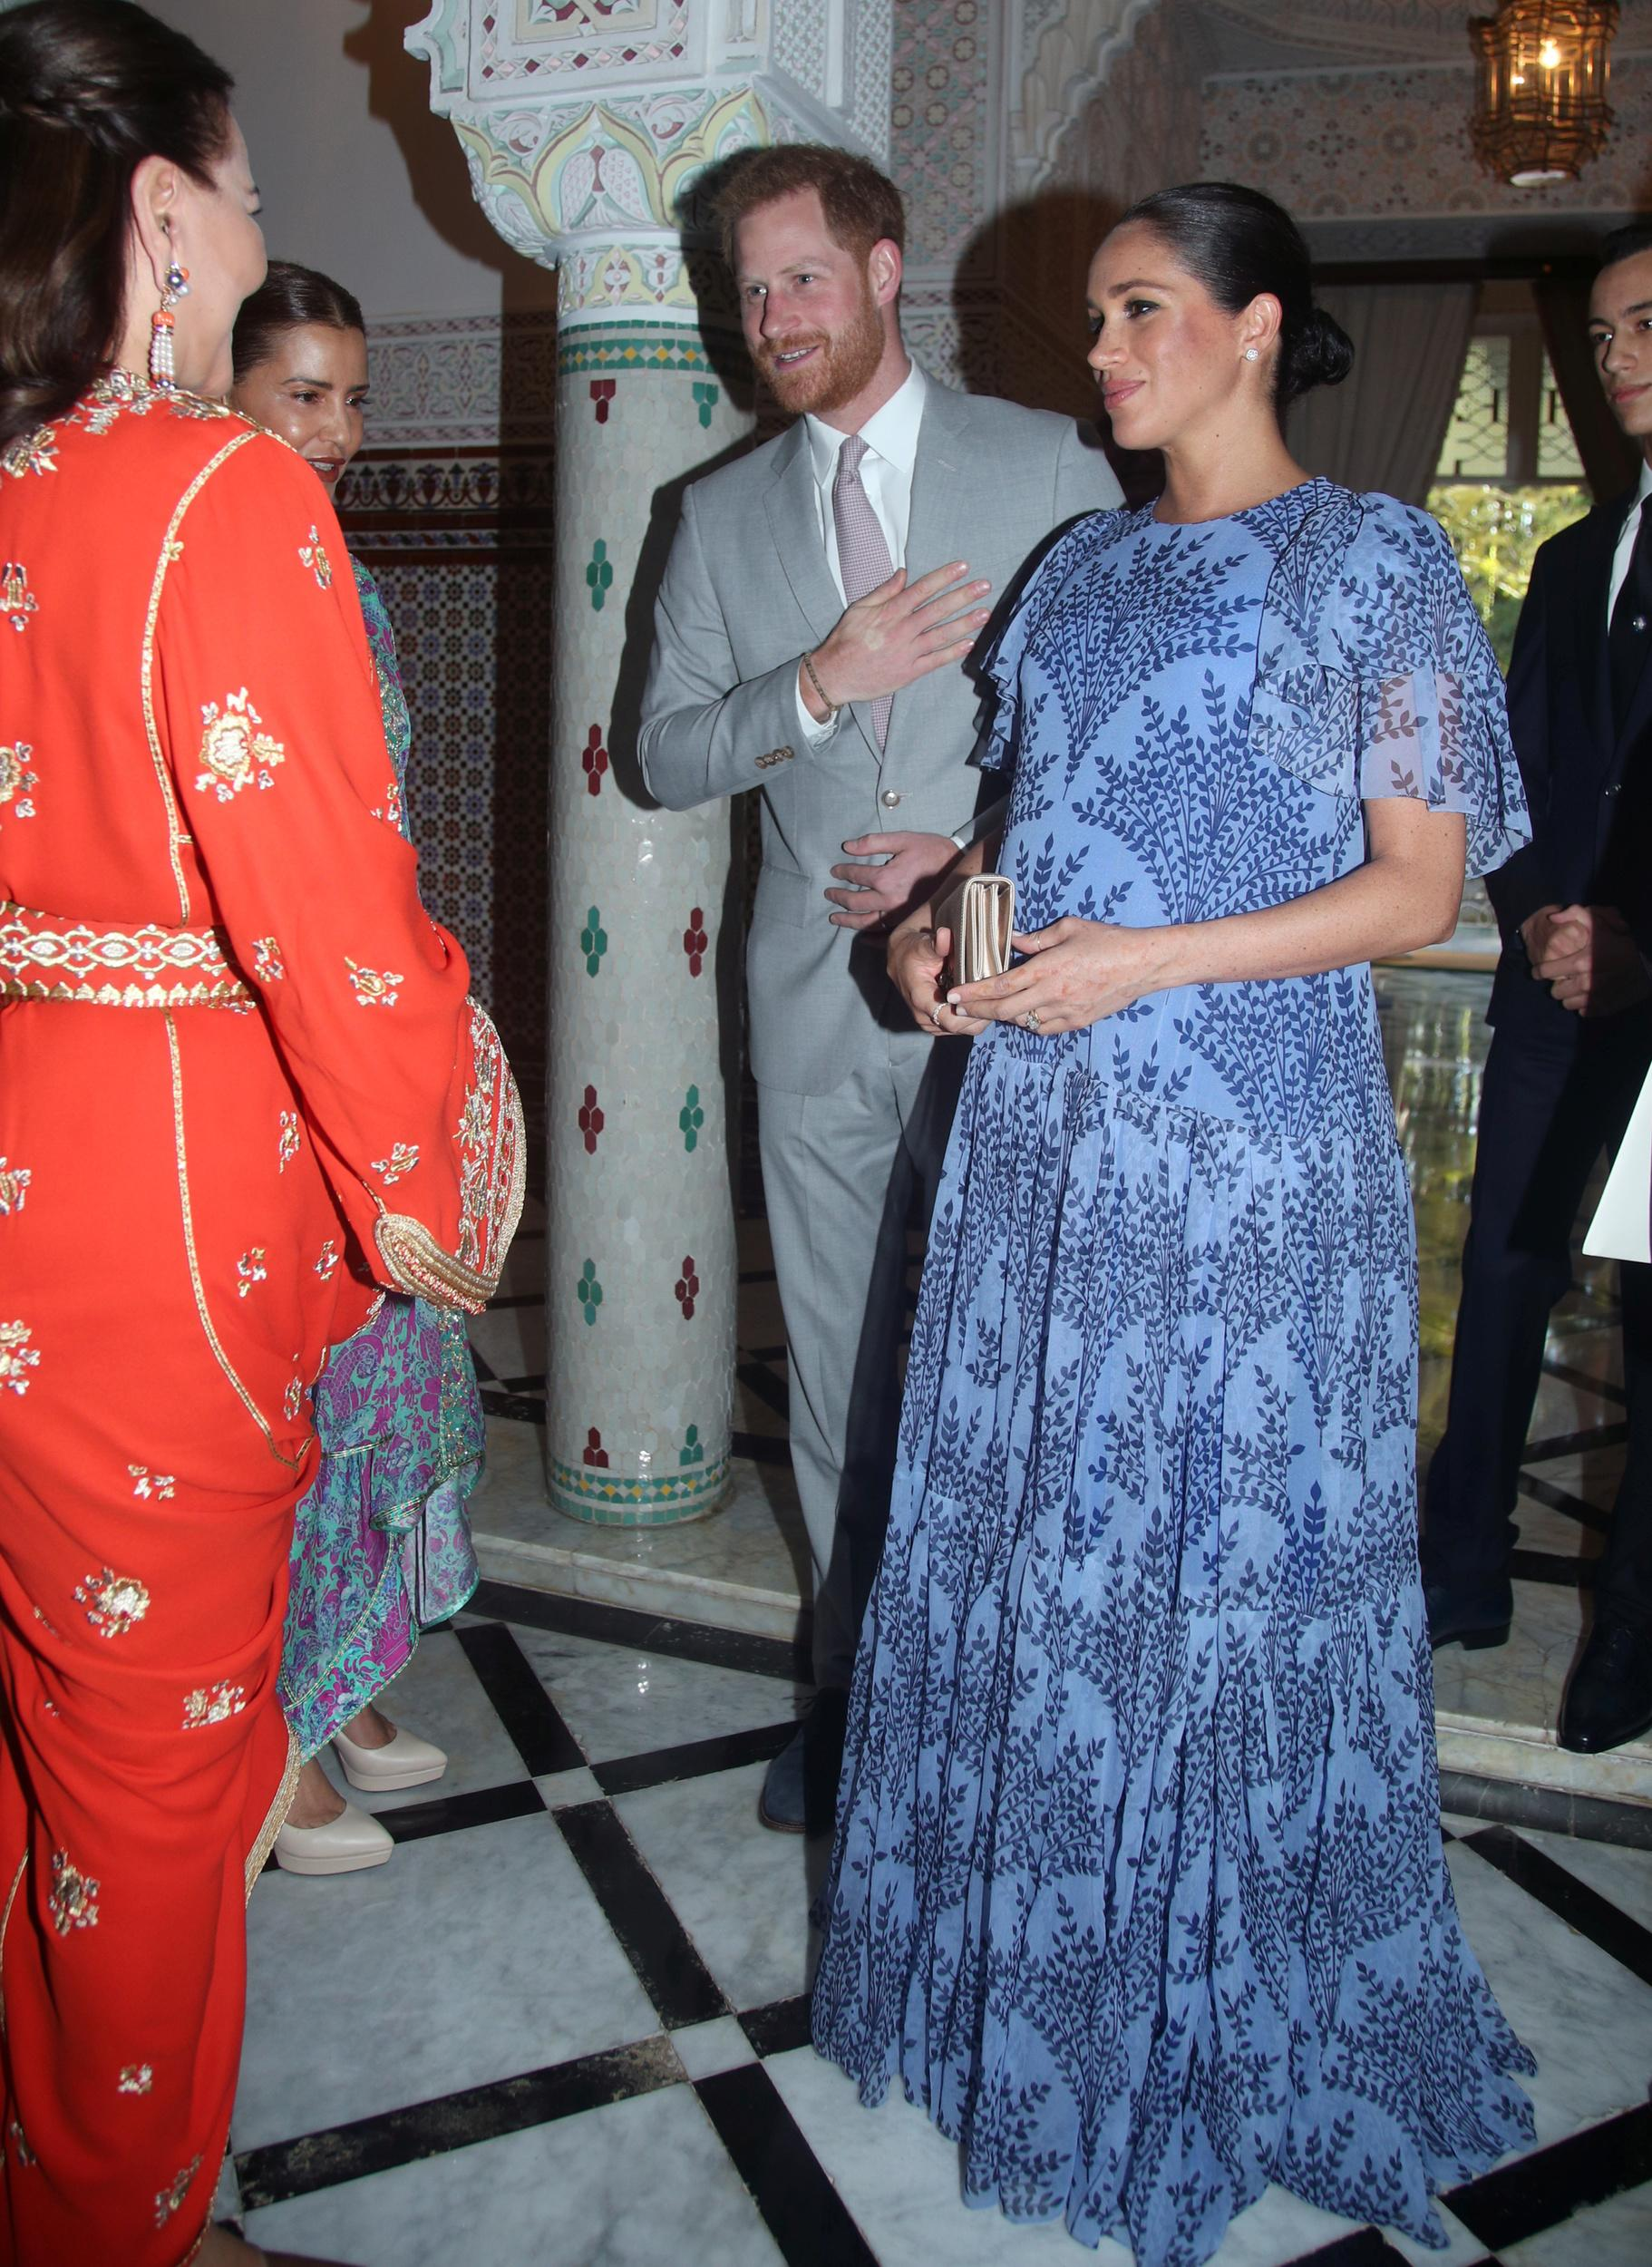 Britain's Meghan, Duchess of Sussex and Prince Harry the Duke of Sussex greet Princess Lalla Meryem and Princess Lalla Hasna during an audience with King Mohammed VI of Morocco at his residence in Rabat, Morocco February 25, 2019. Yui Mok/Pool via REUTERS